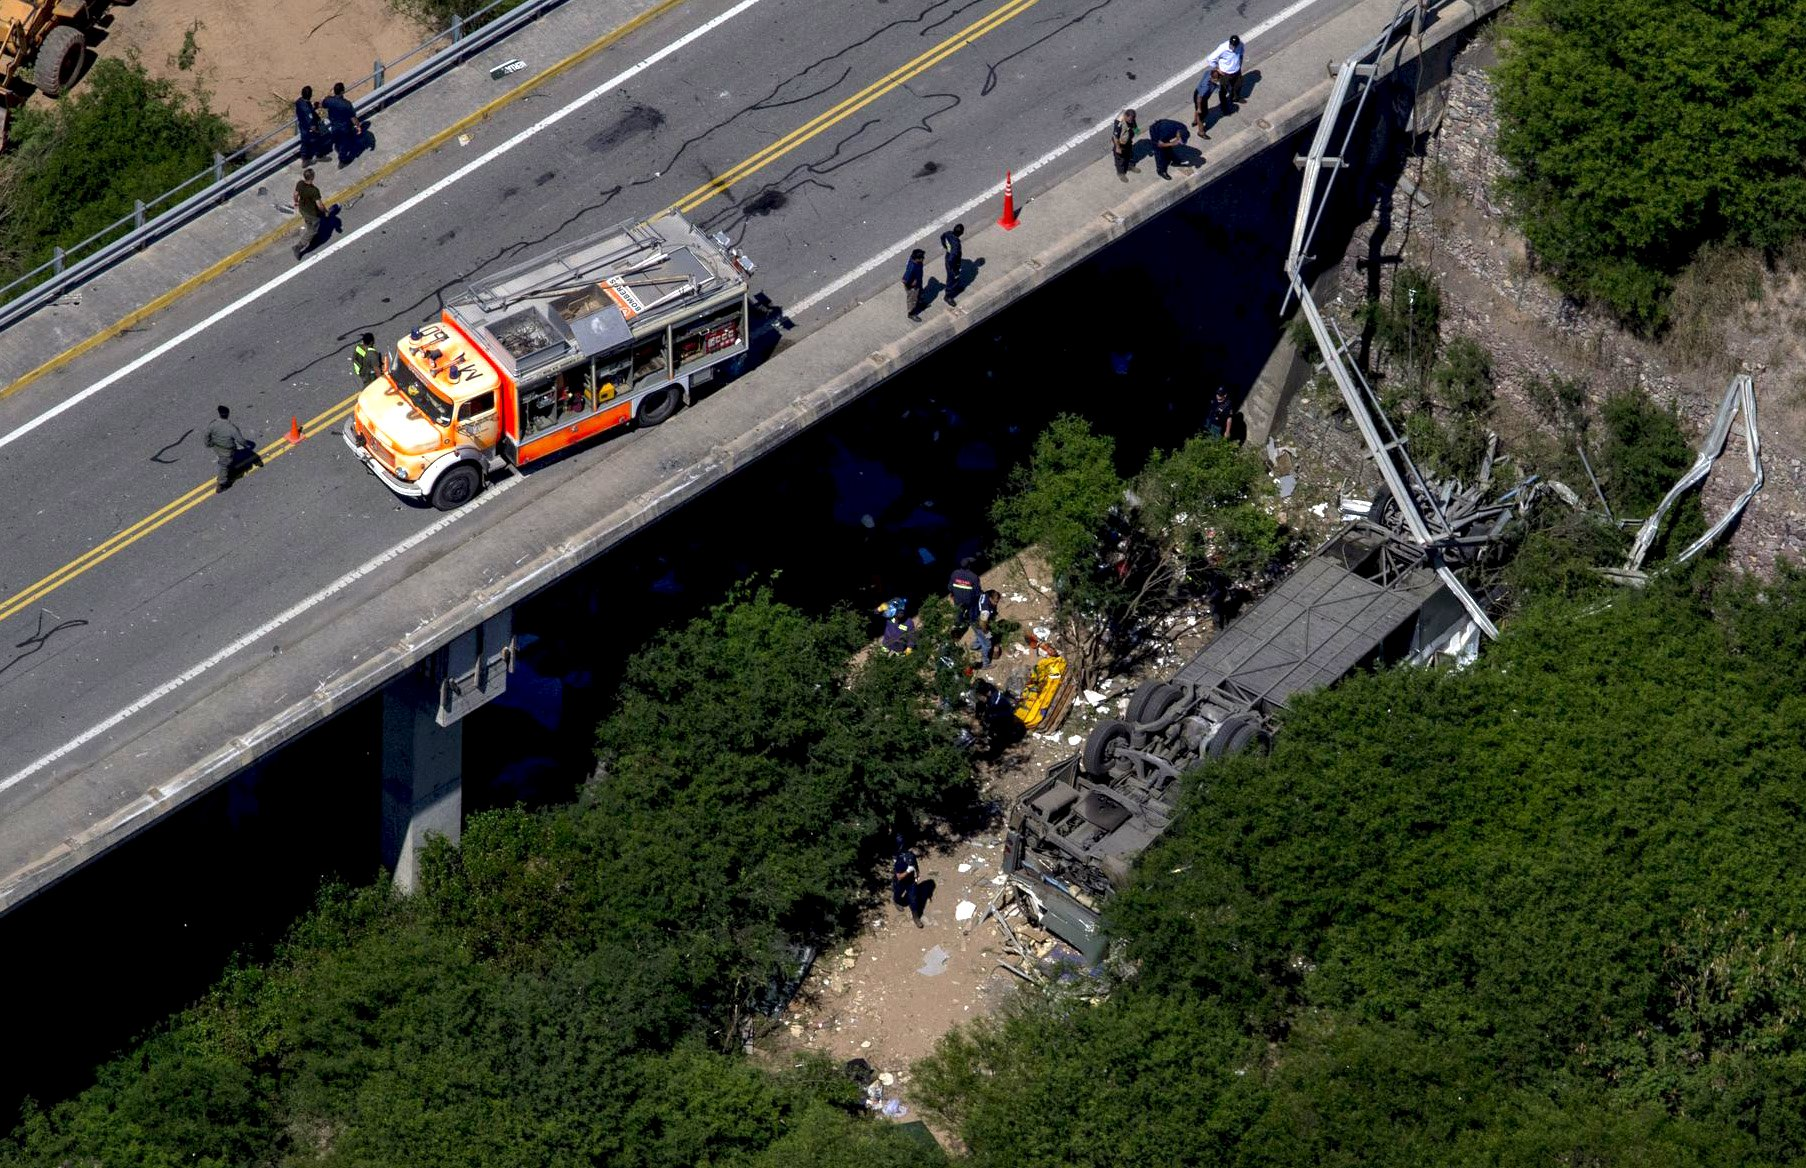 Aerial view of the overturned bus which crashed in Argentina's northern province of Salta, December 14, 2015. Photo: Reuters